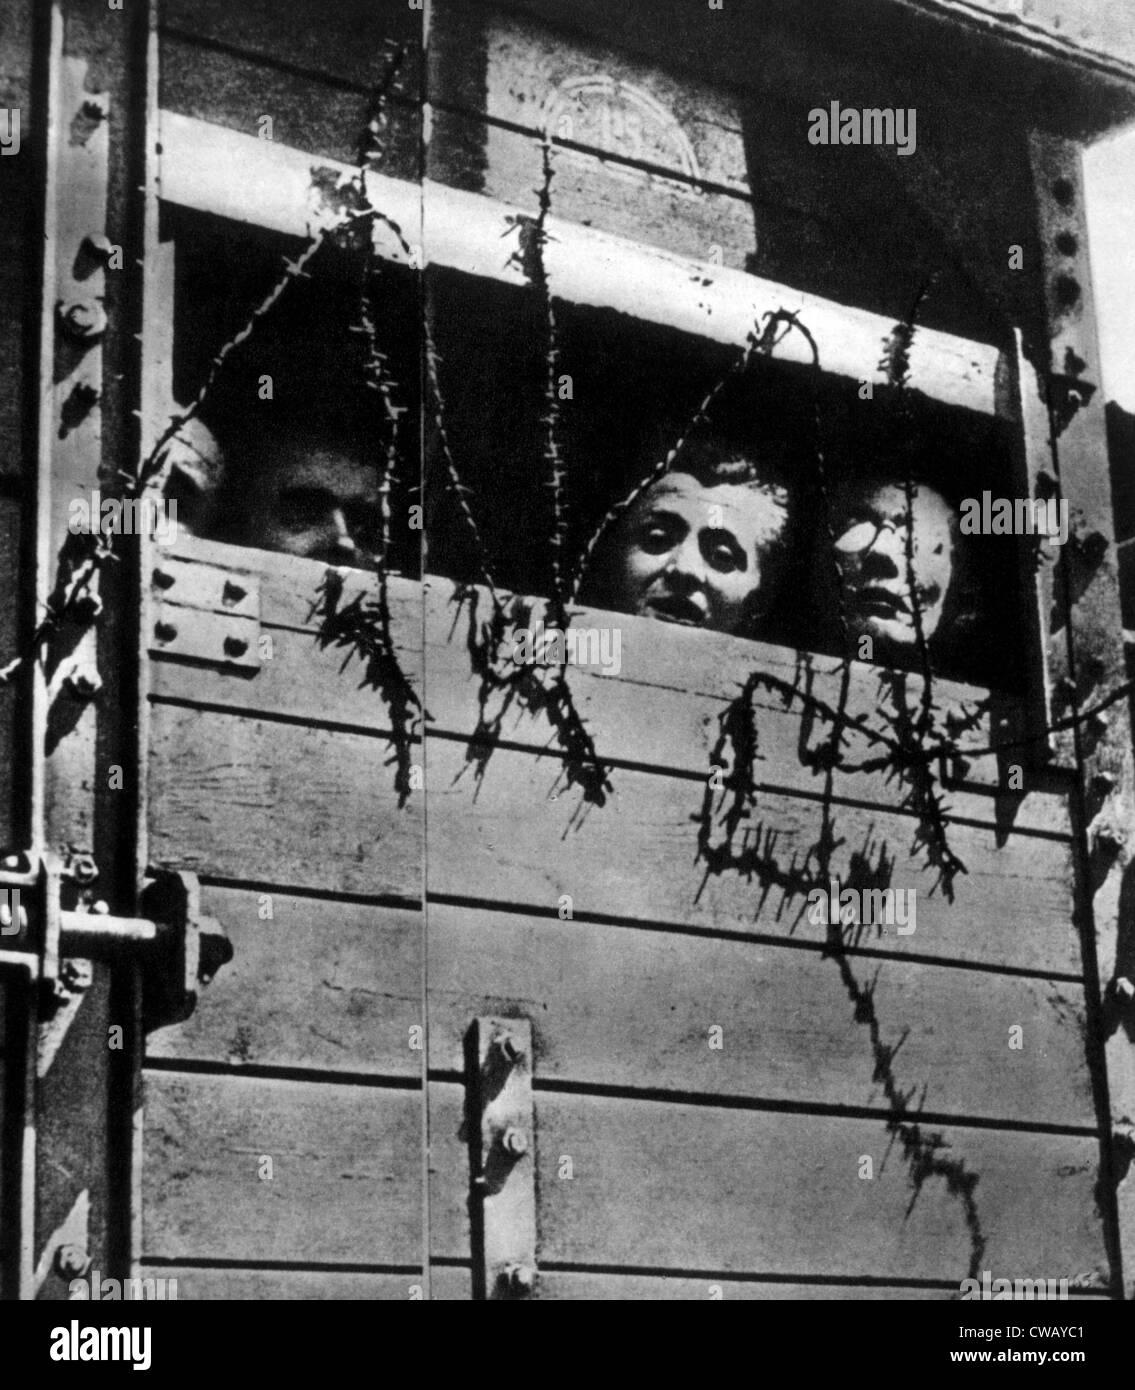 Transport to Auschwitz concentration camp, 1944. - Stock Image